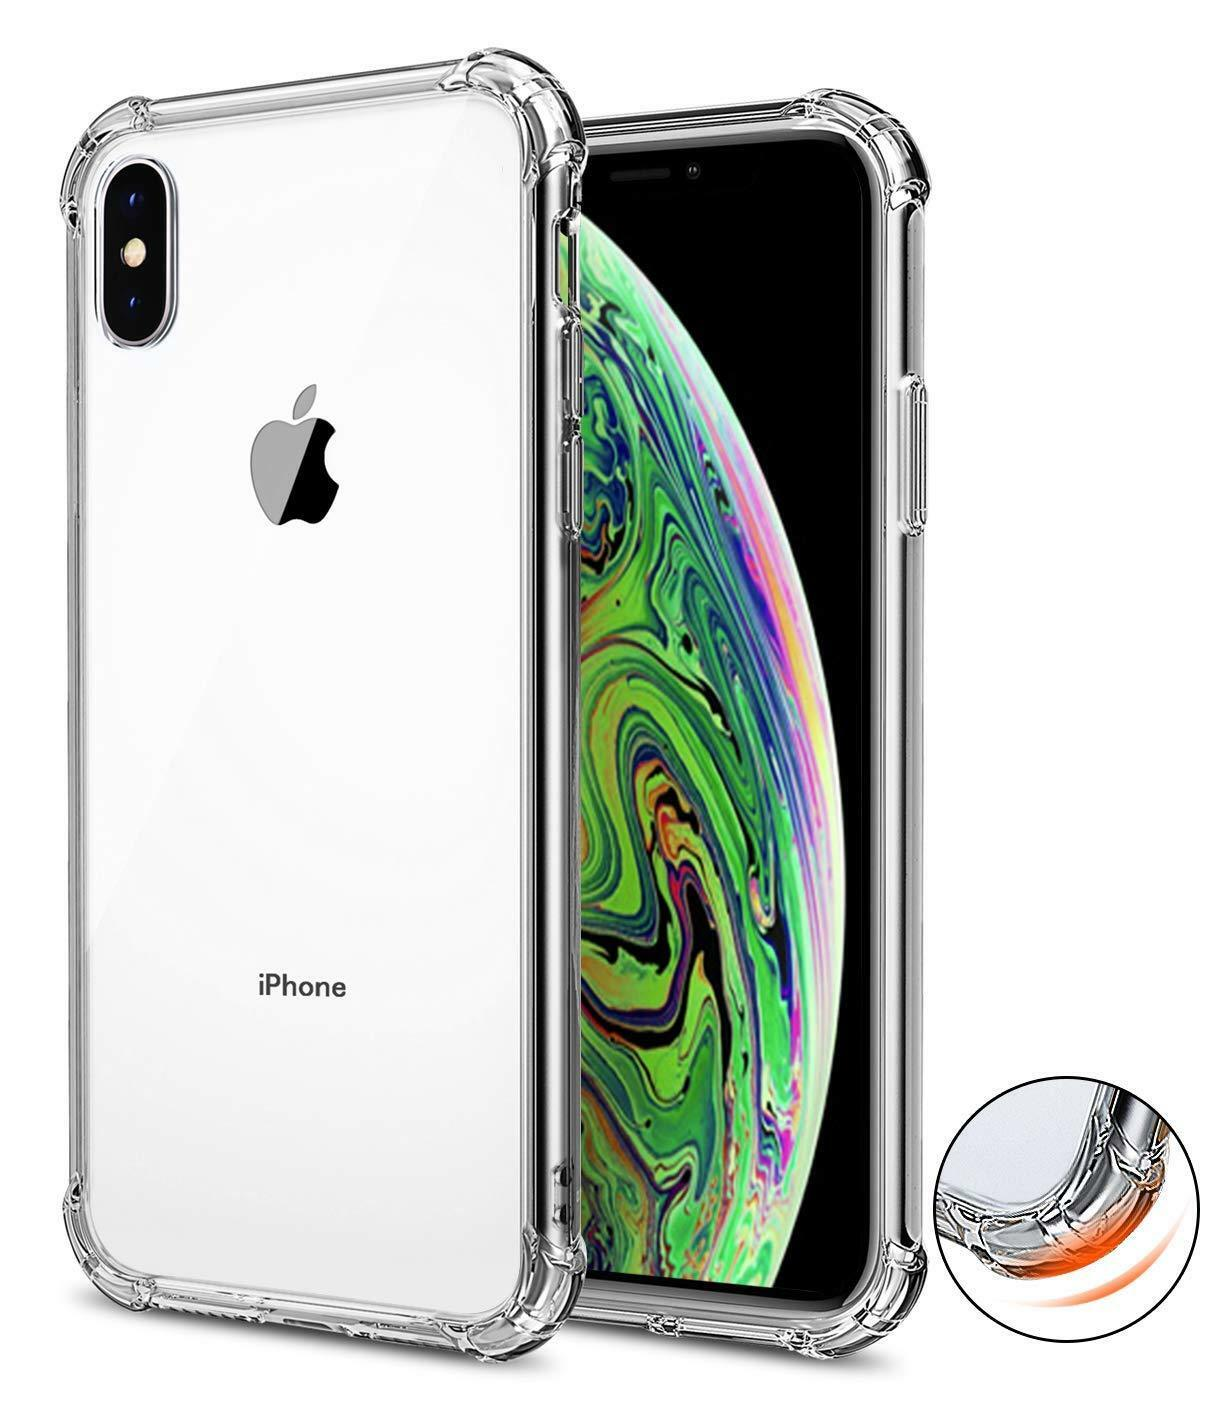 huge selection of 34afd 41a06 Details about For iPhone XS Max XR Clear Transparent Shockproof TPU Bumper  Case Cover